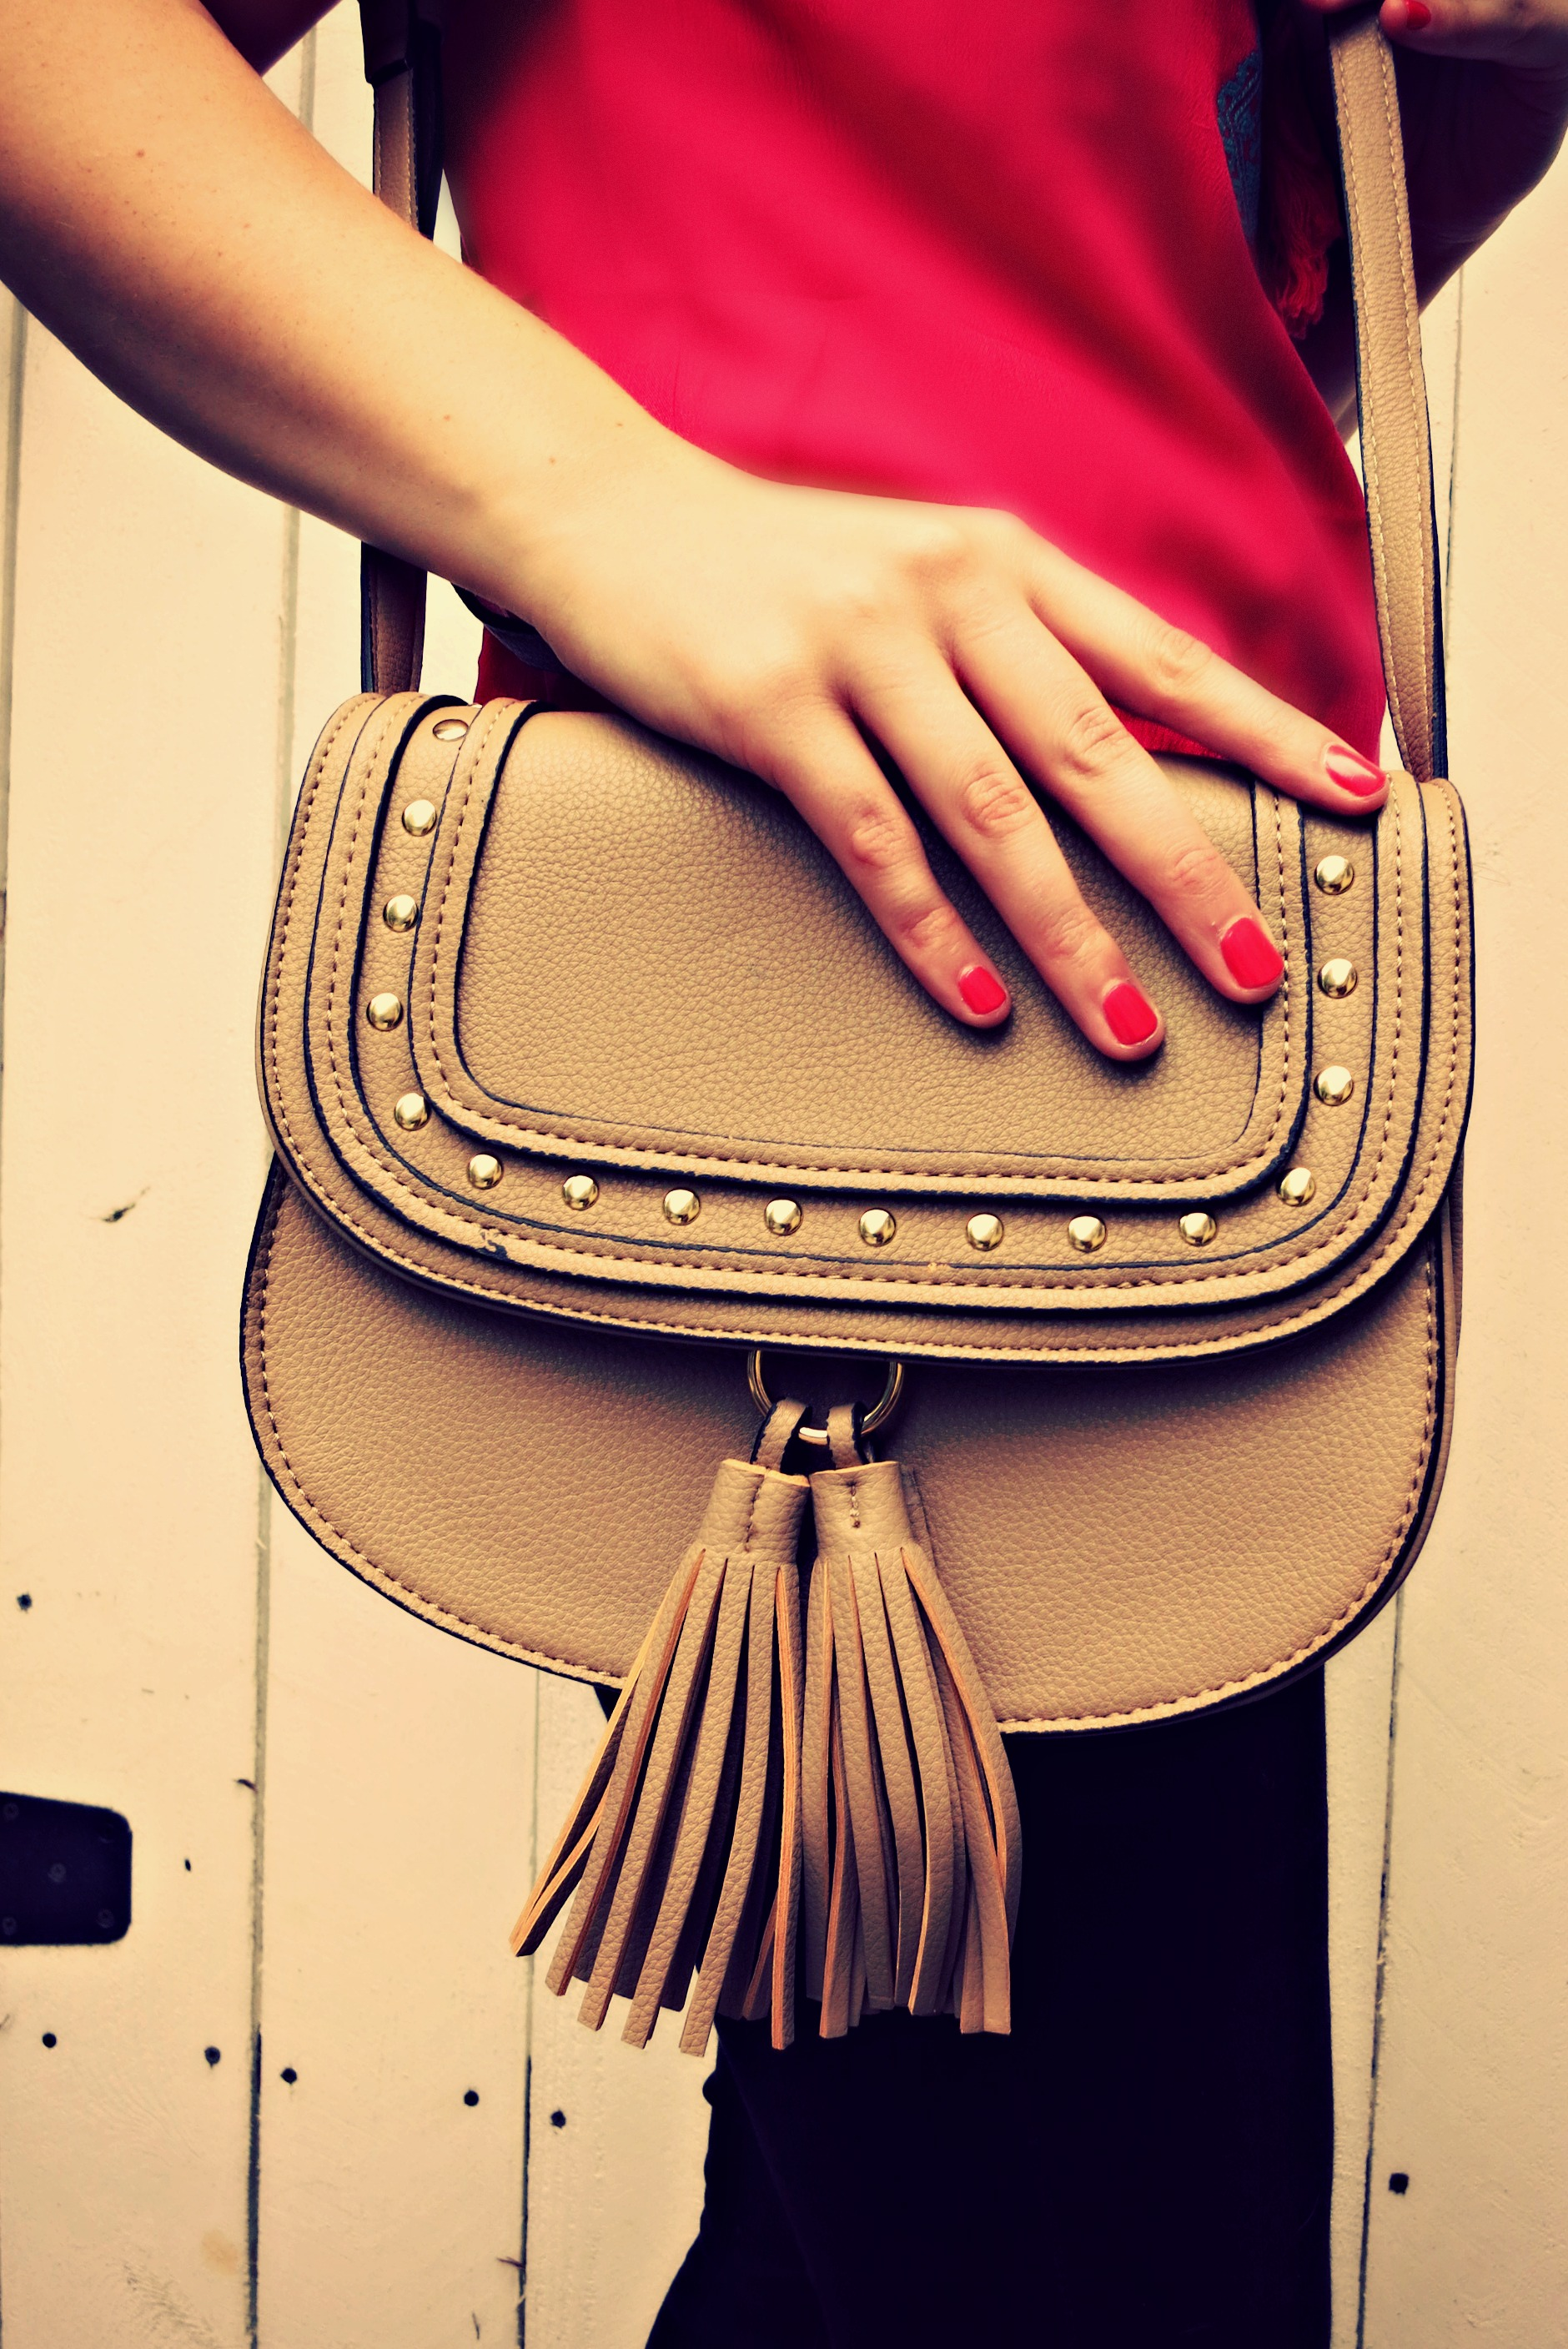 pursecloseup